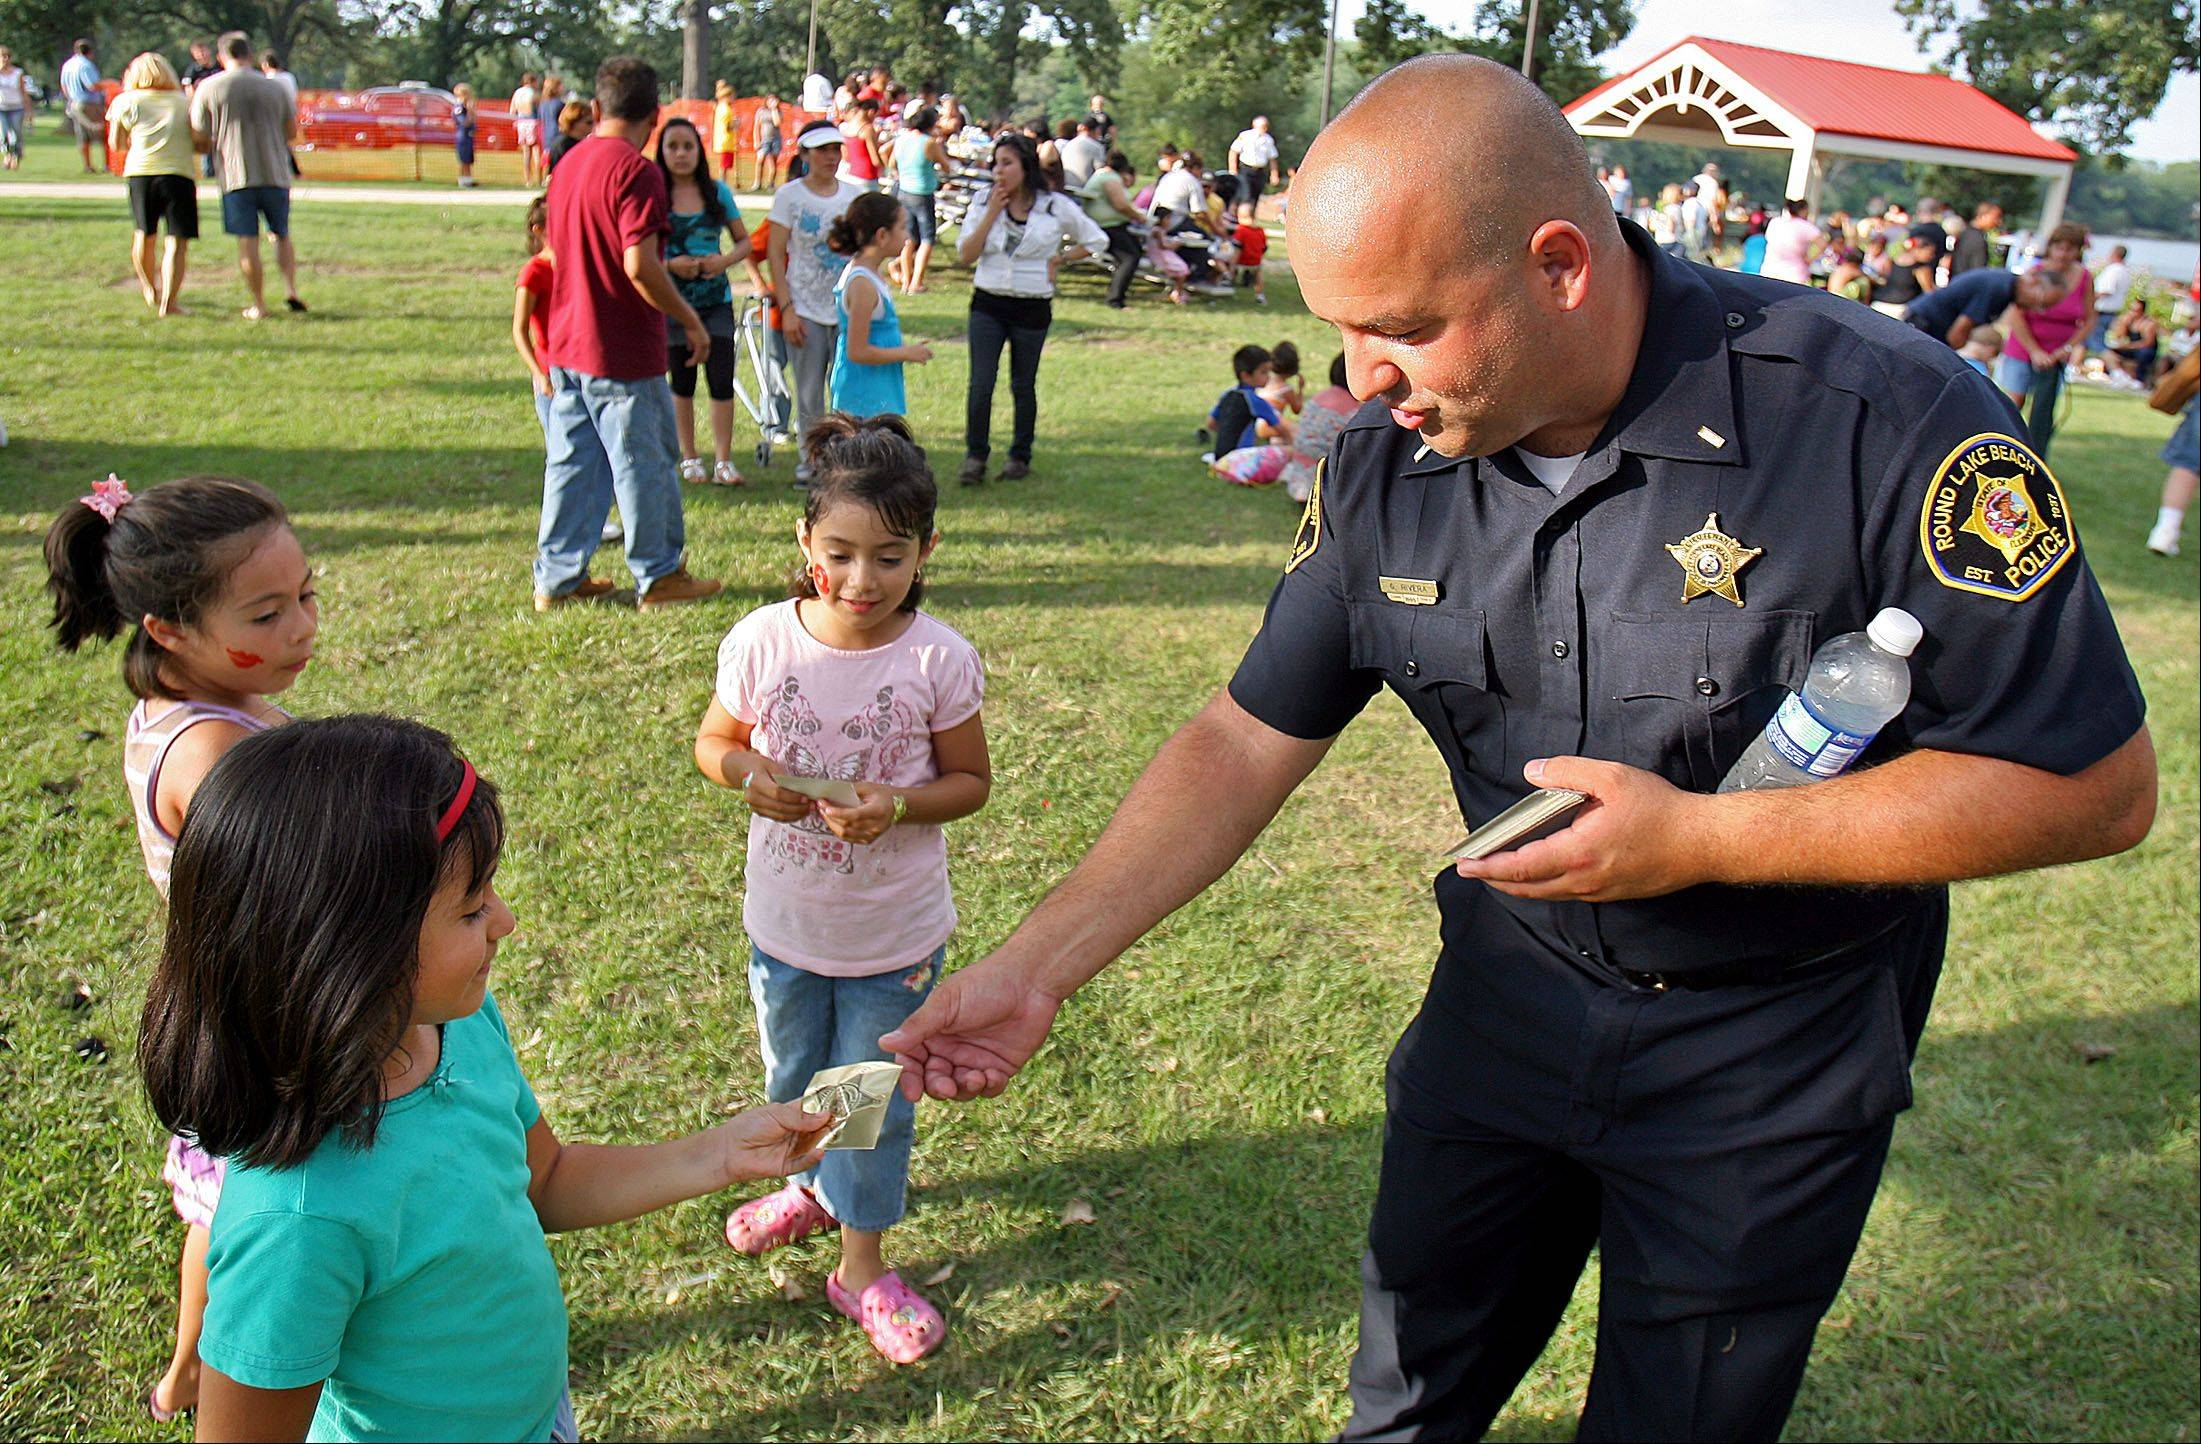 Round Lake Beach Police officer Gilbert Rivera hands out stickers to kids during a previous National Nite Out celebration at Lakeside Park. This year's event takes place Tuesday, Aug. 6.